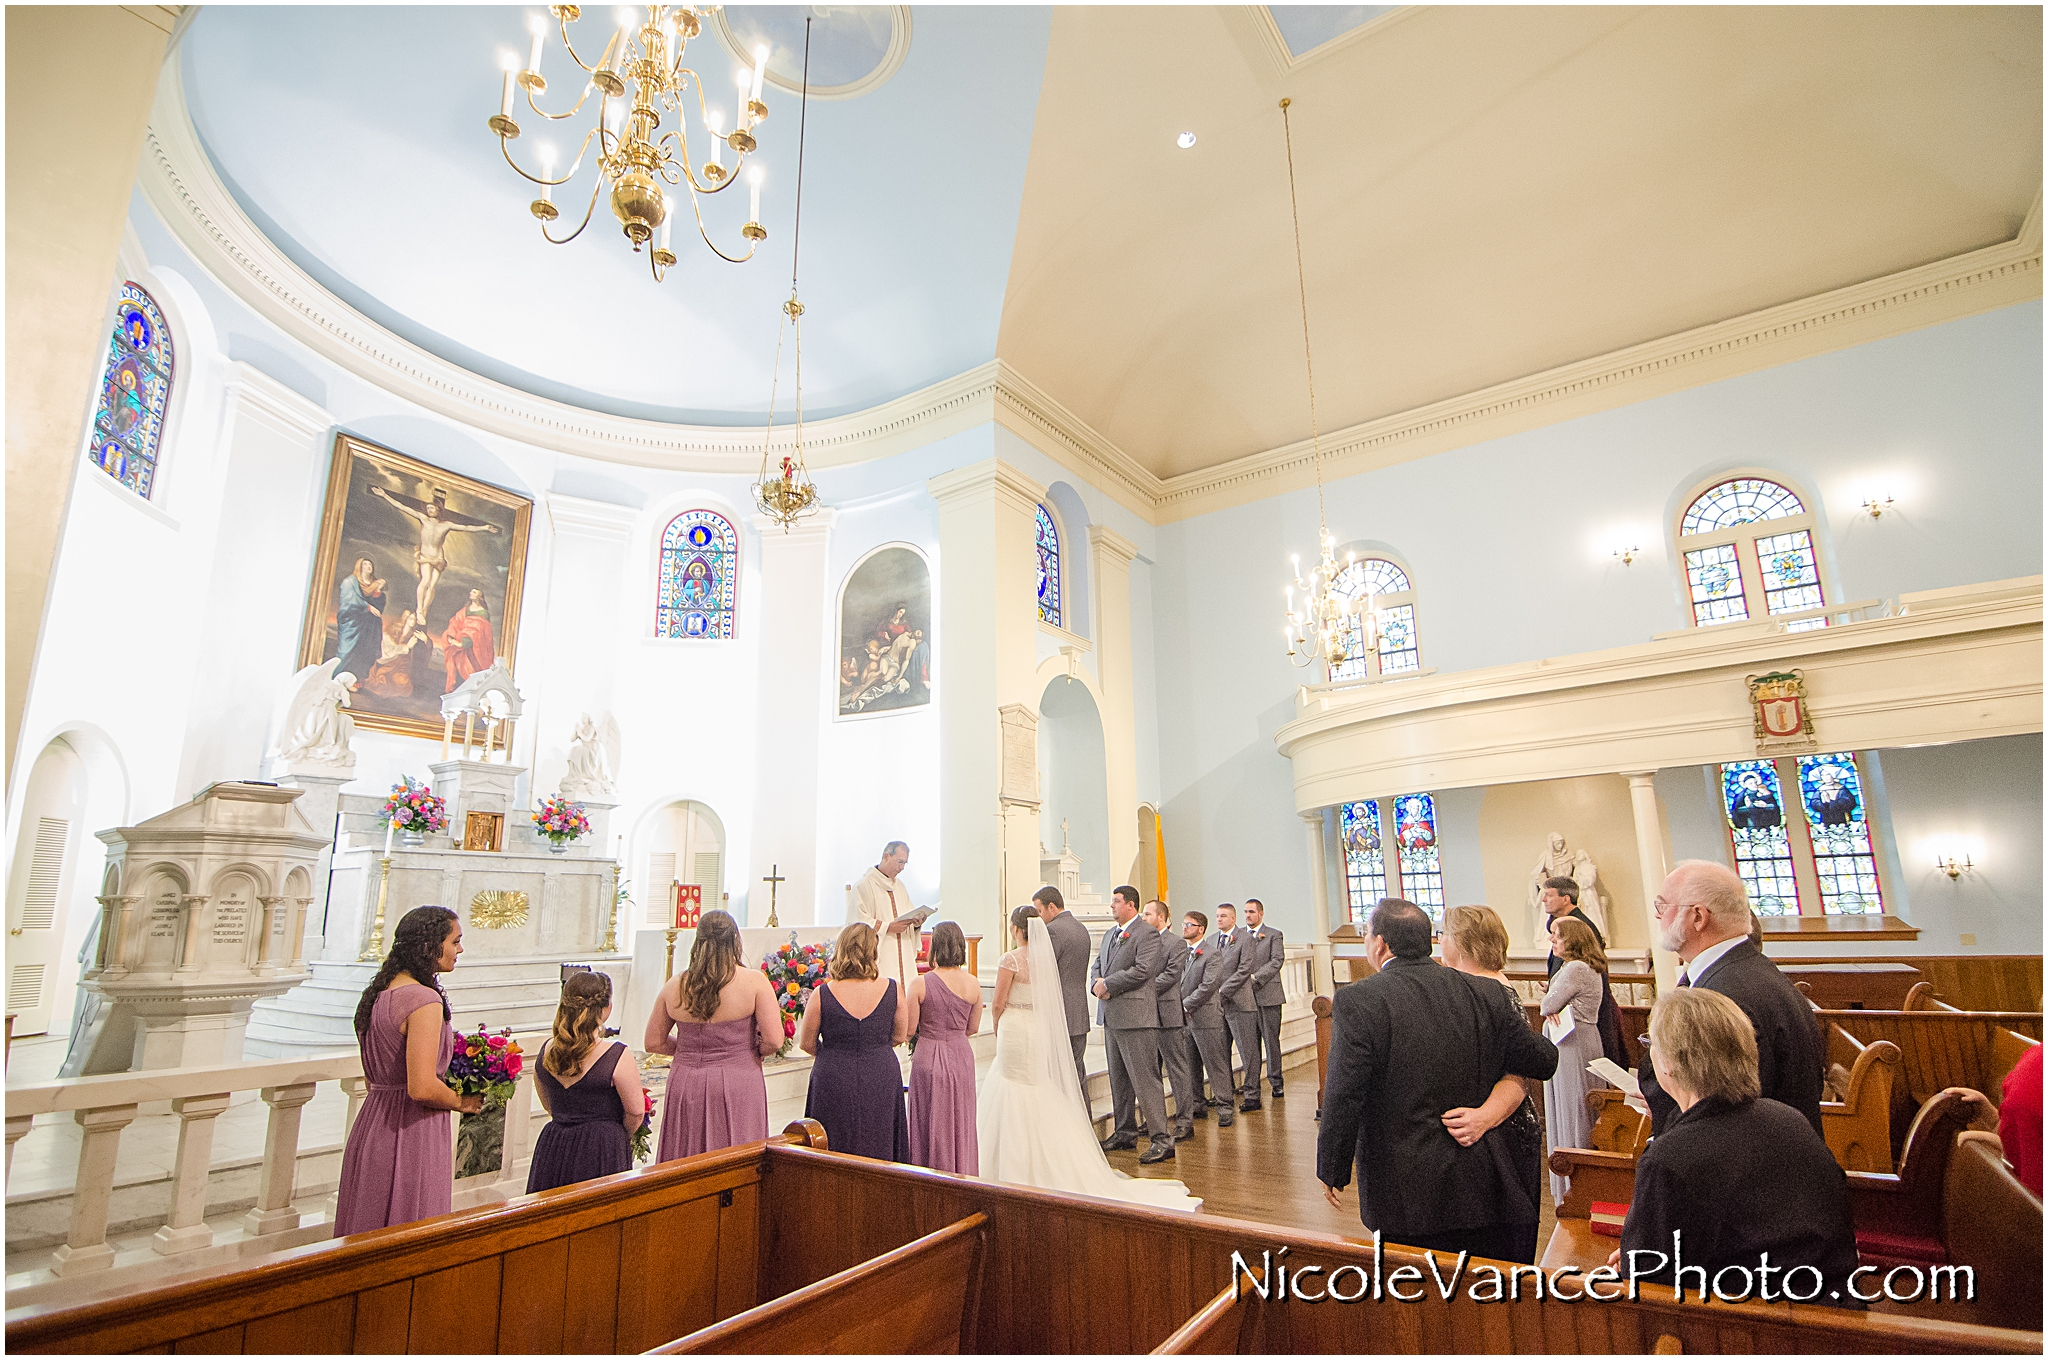 The wedding ceremony takes place at the beautiful and historic St Peter's Catholic Church in Richmond, Virginia.